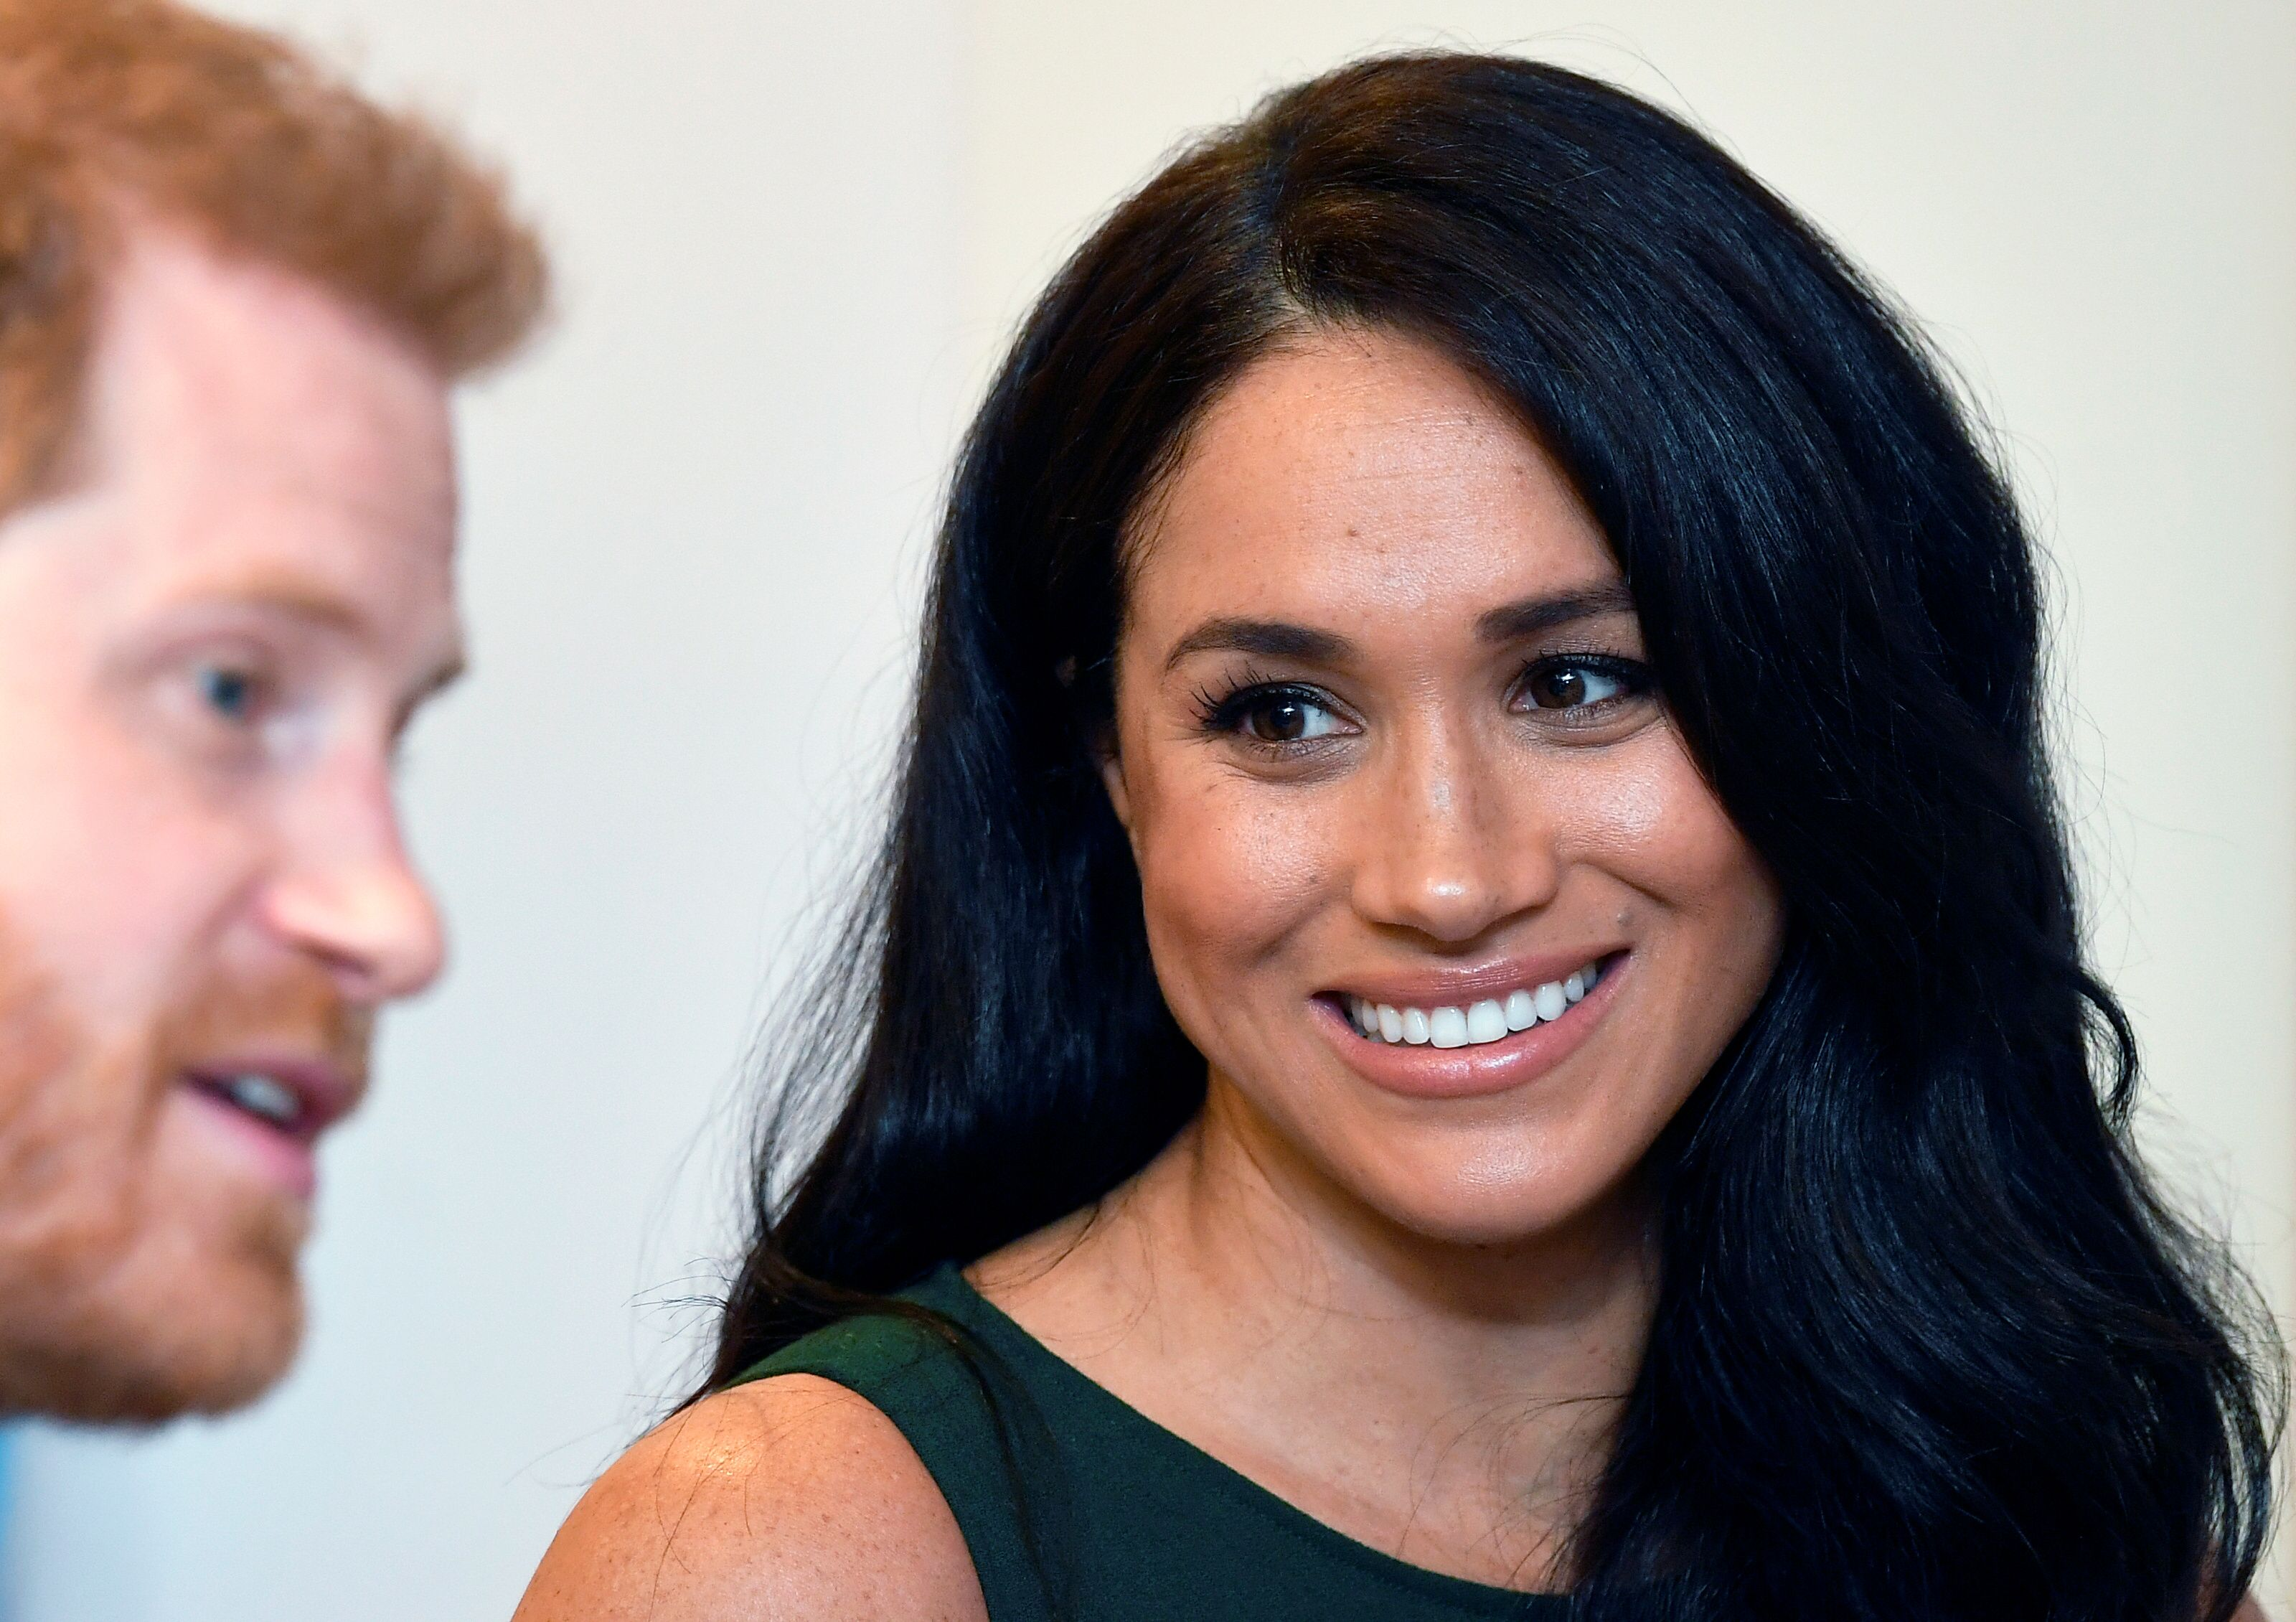 Prince Harry's Comment About Two Children Has Left Some Wondering If Meghan Markle Is Pregnant